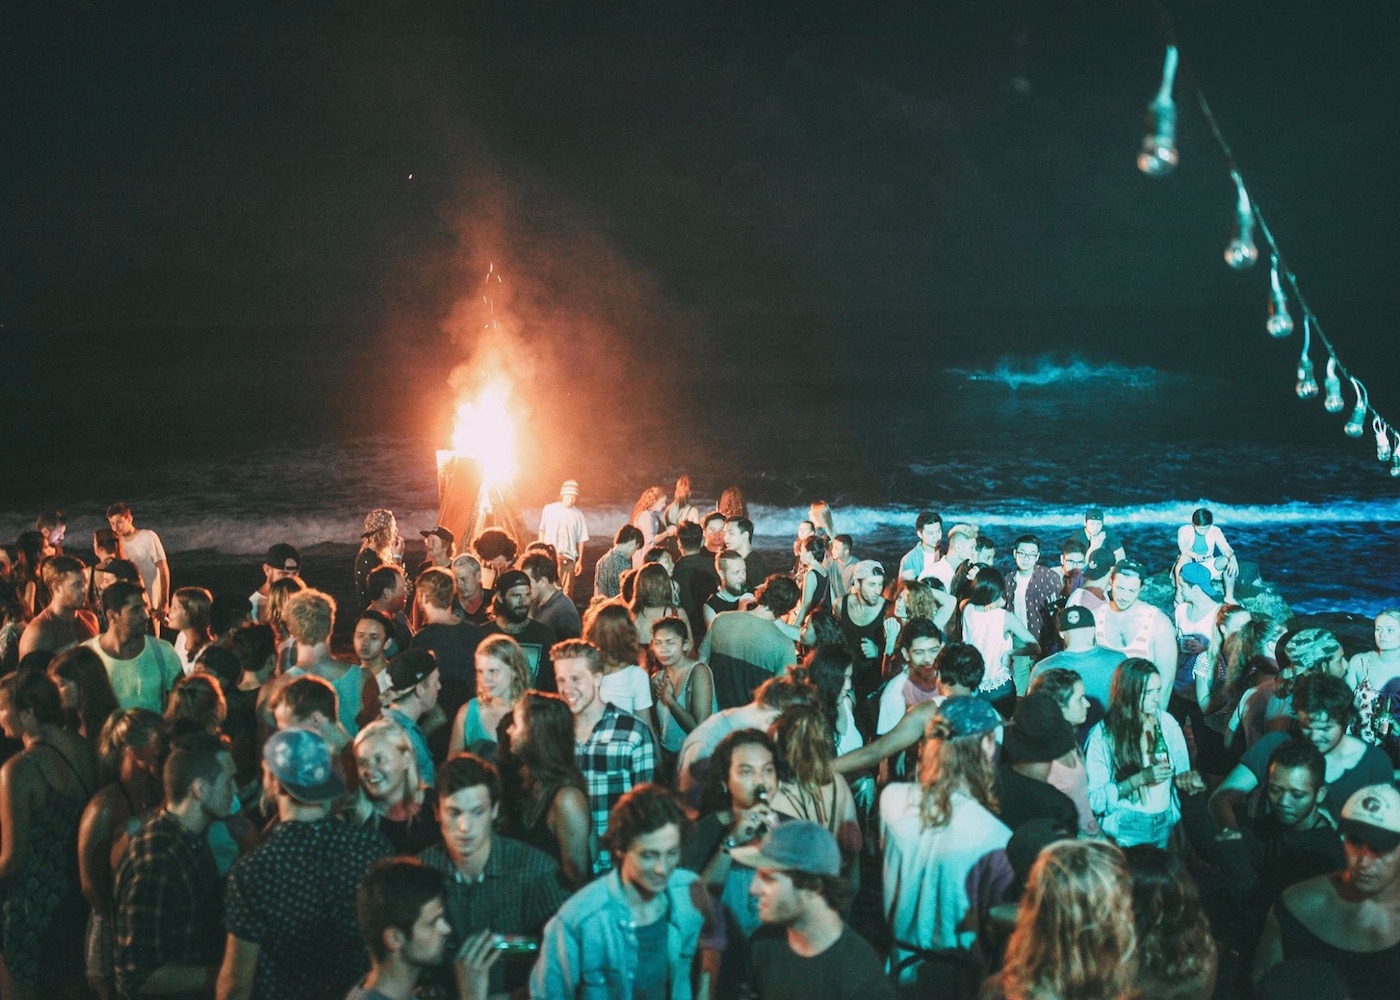 Nighttime beach party at Sand Bar in Canggu, Bali, Indonesia